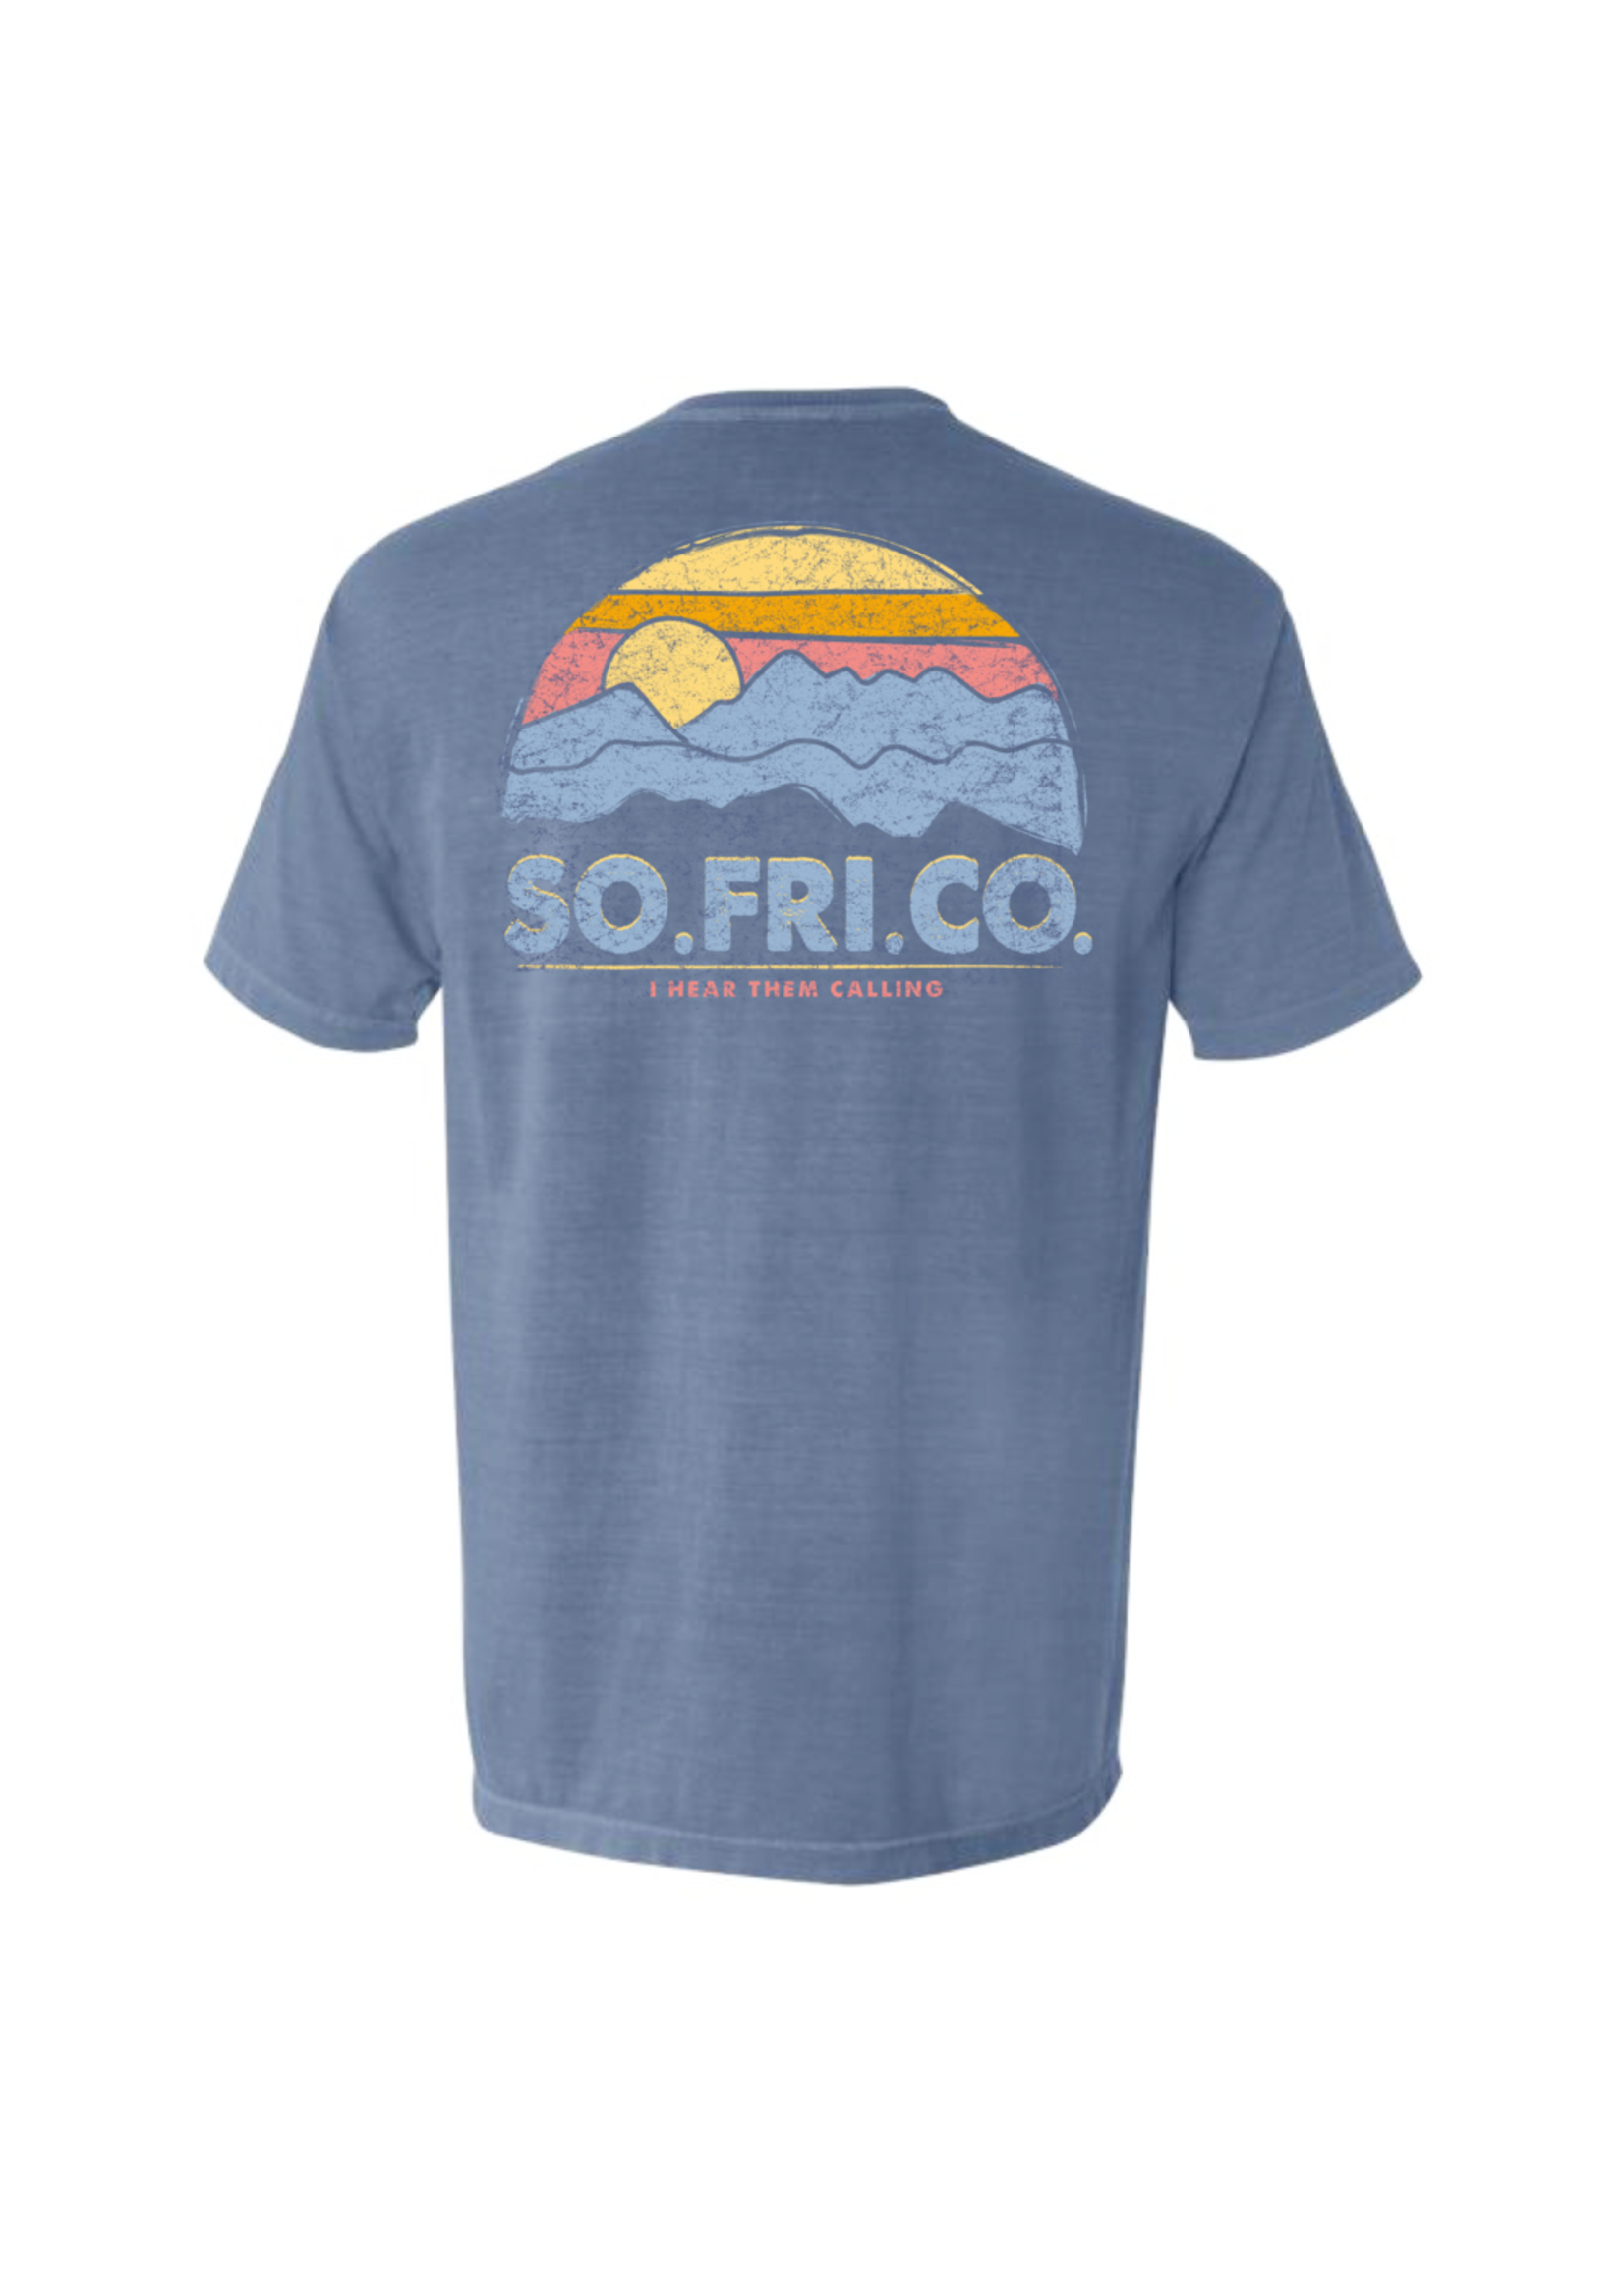 Southern Fried Cotton I Hear Them Calling Short Sleeve T-Shirt